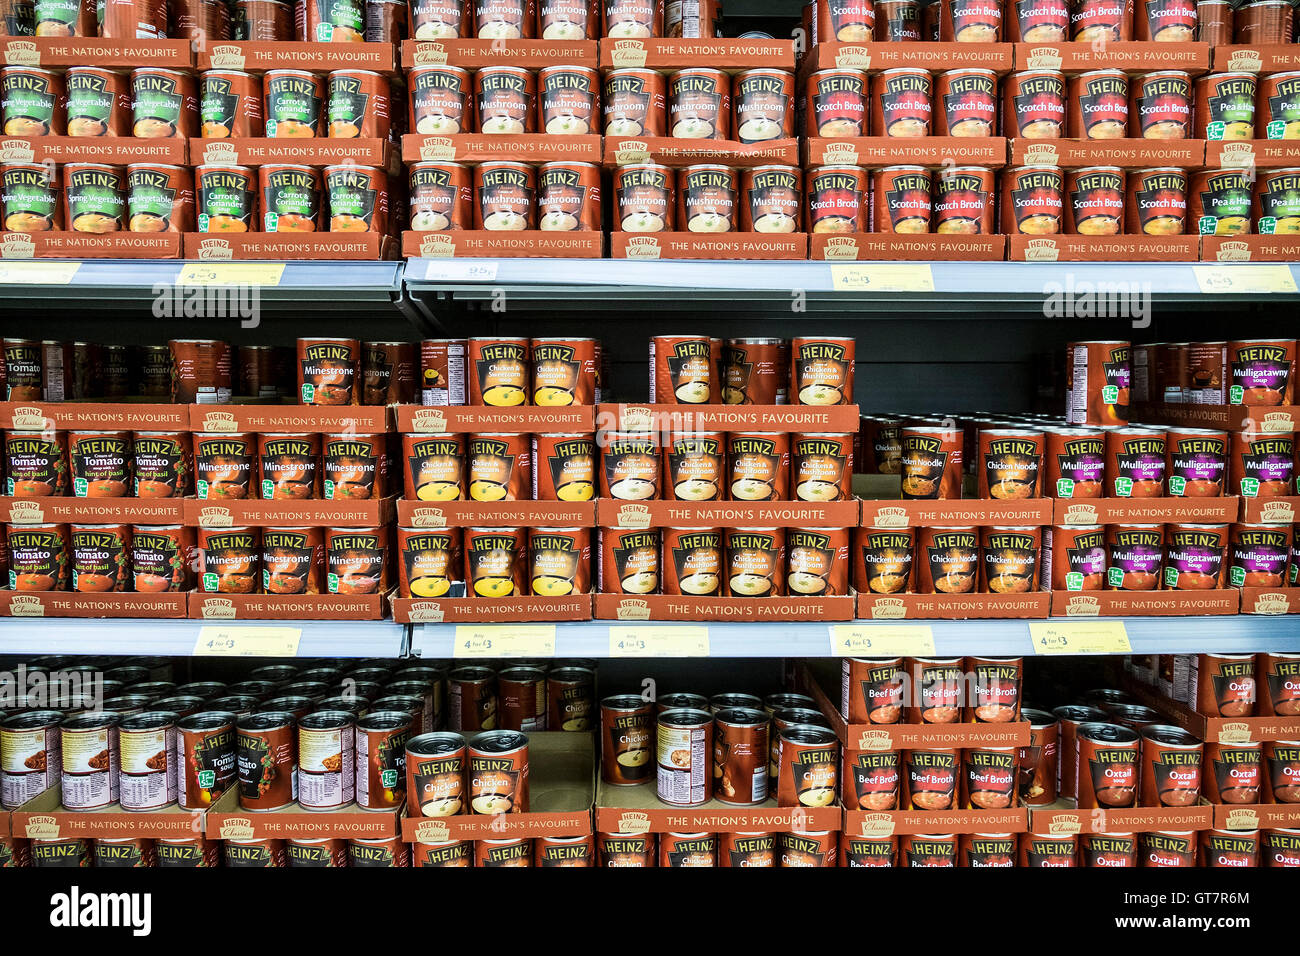 Various types of Heinz soups on display in a supermarket. - Stock Image